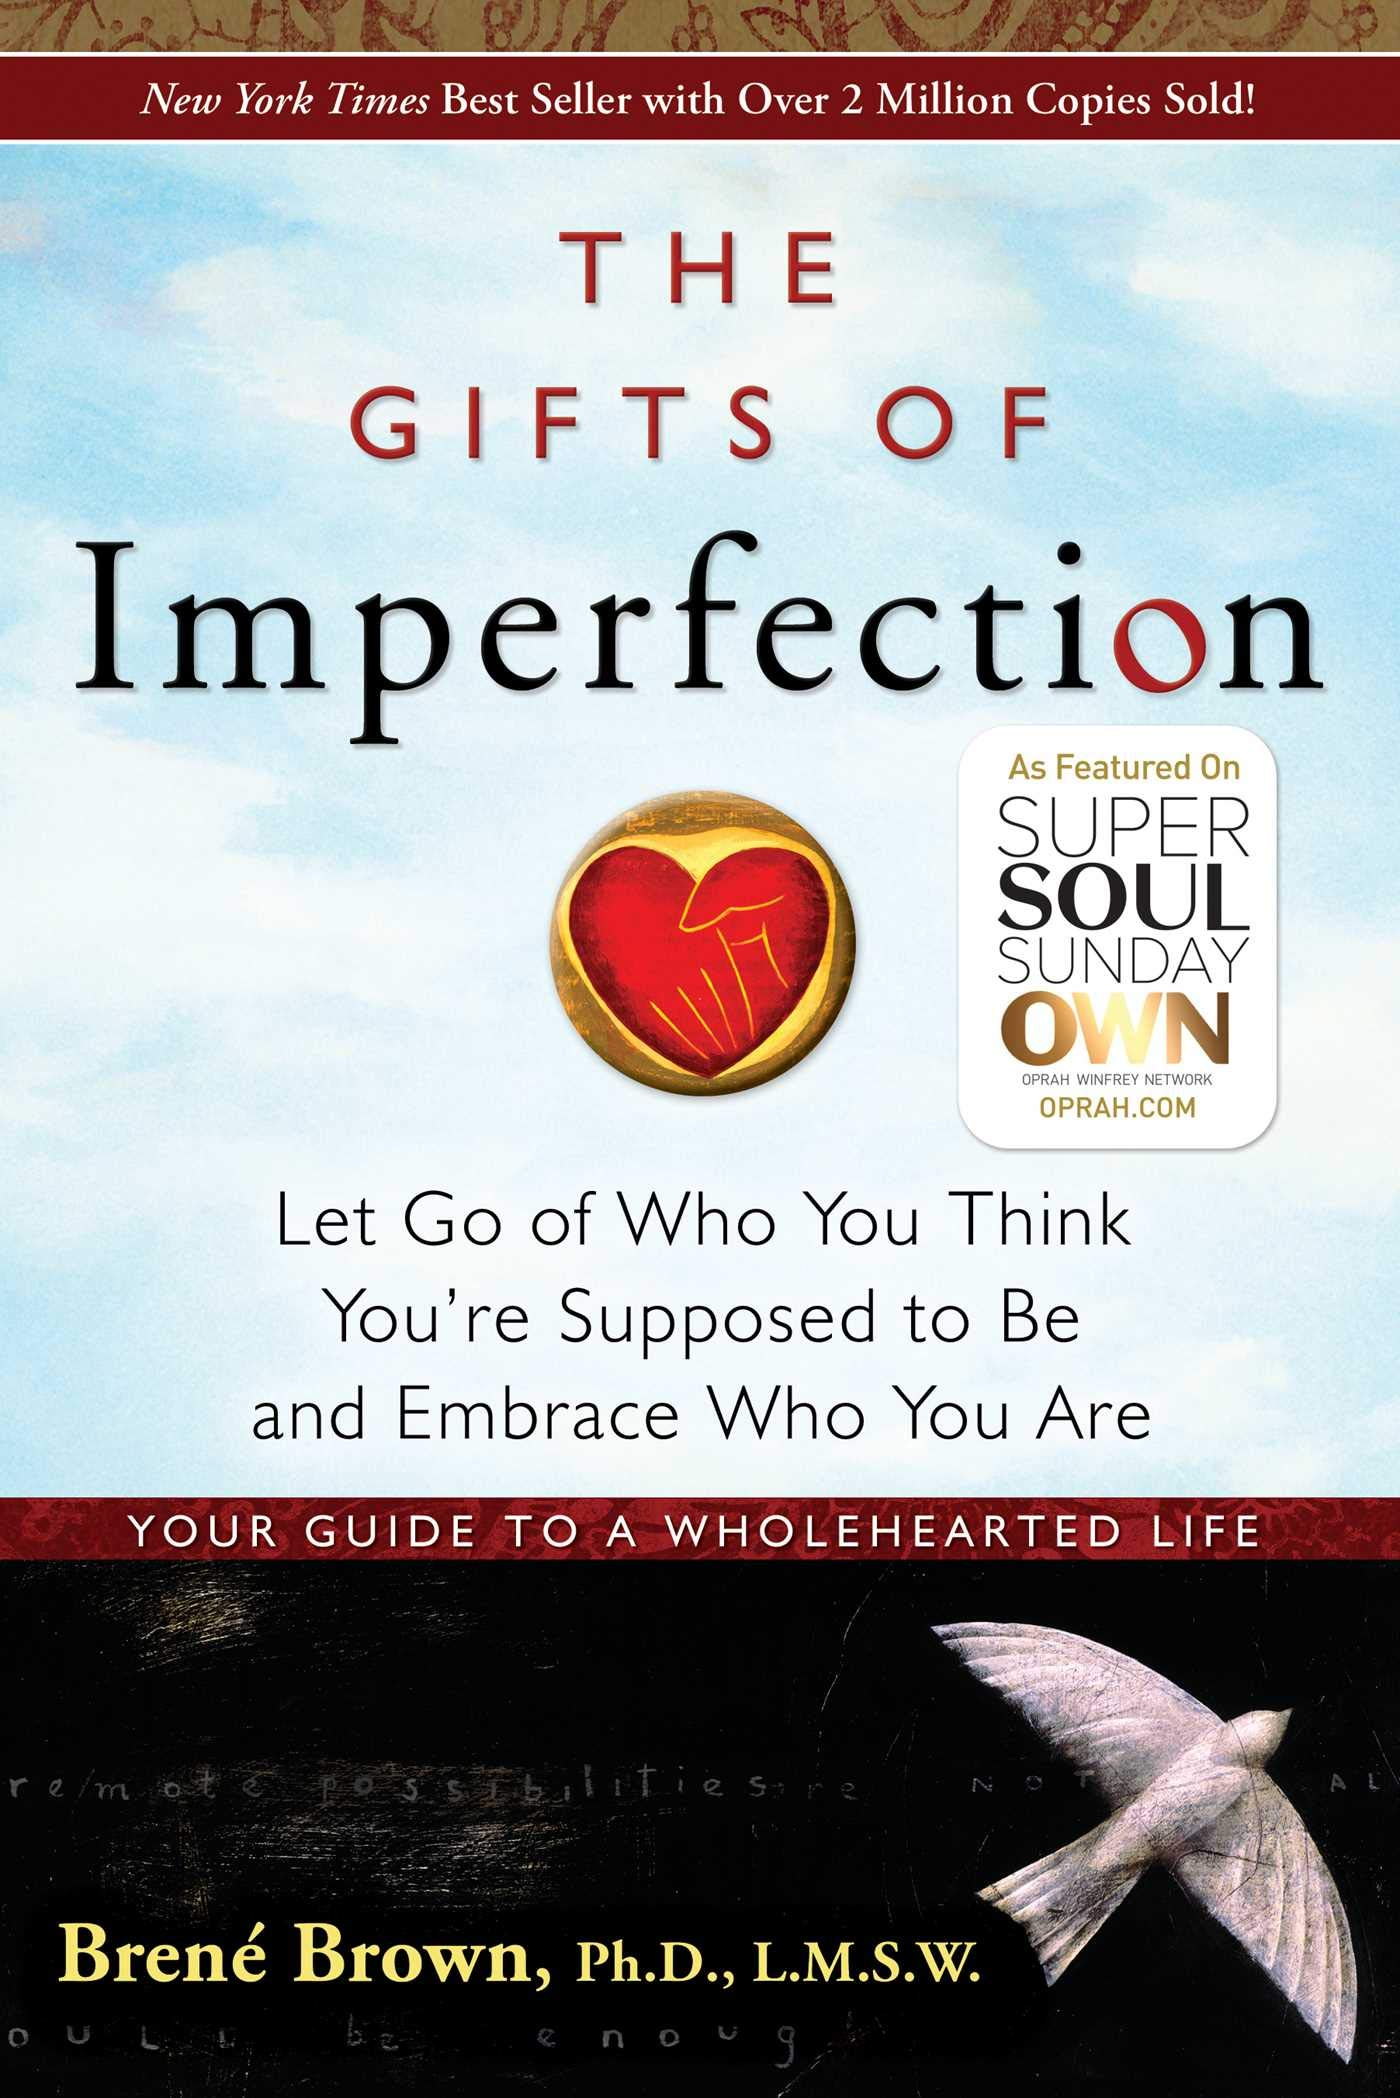 71aHmBv498L - The Gifts of Imperfection: Let Go of Who You Think You're Supposed to Be and Embrace Who You Are (1)